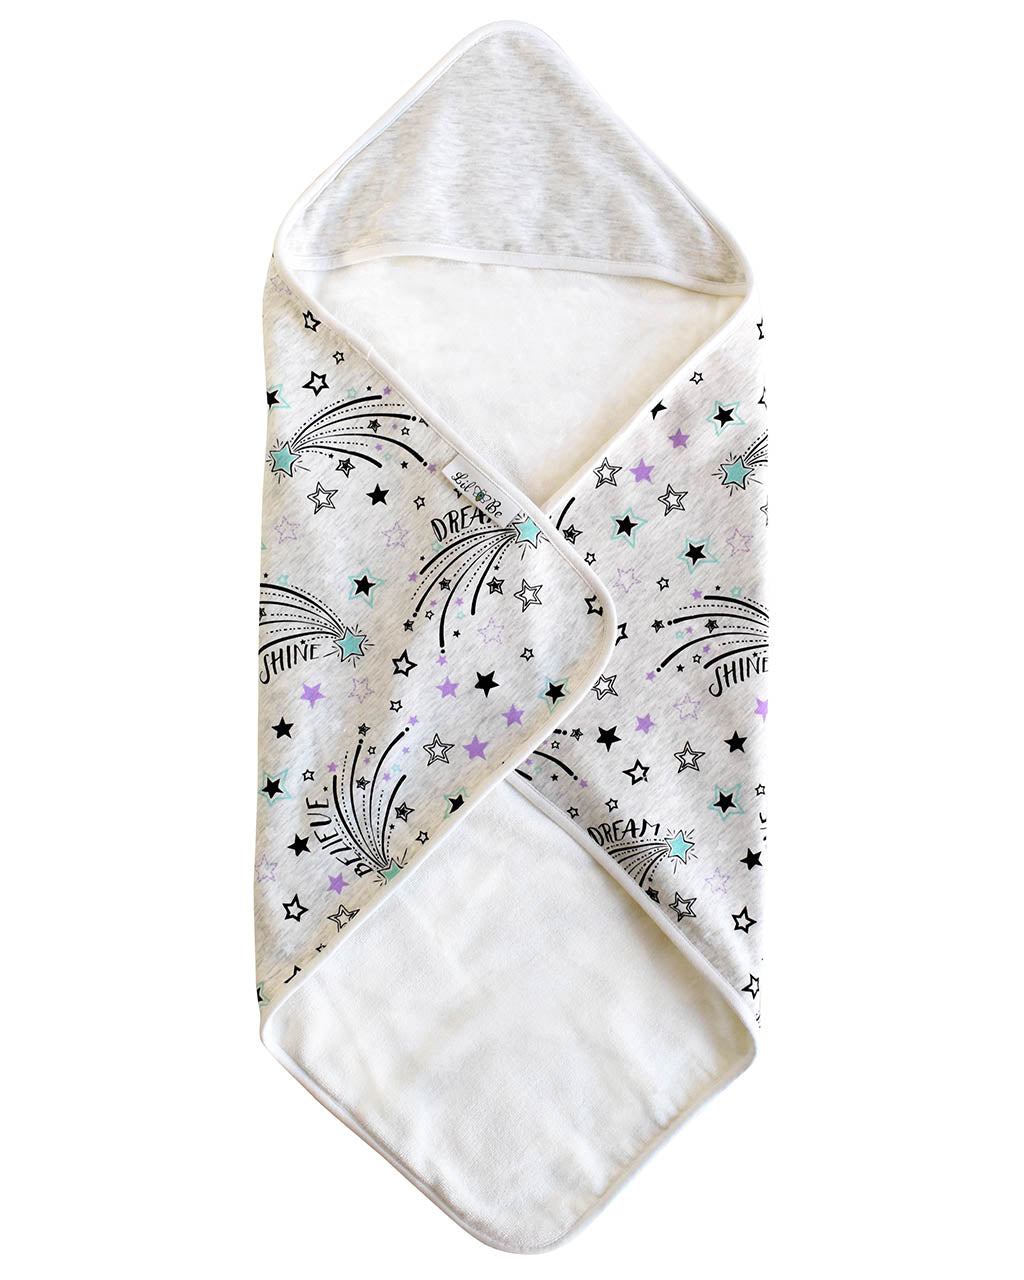 Shooting Star Baby Hooded Towel with Front Folded View